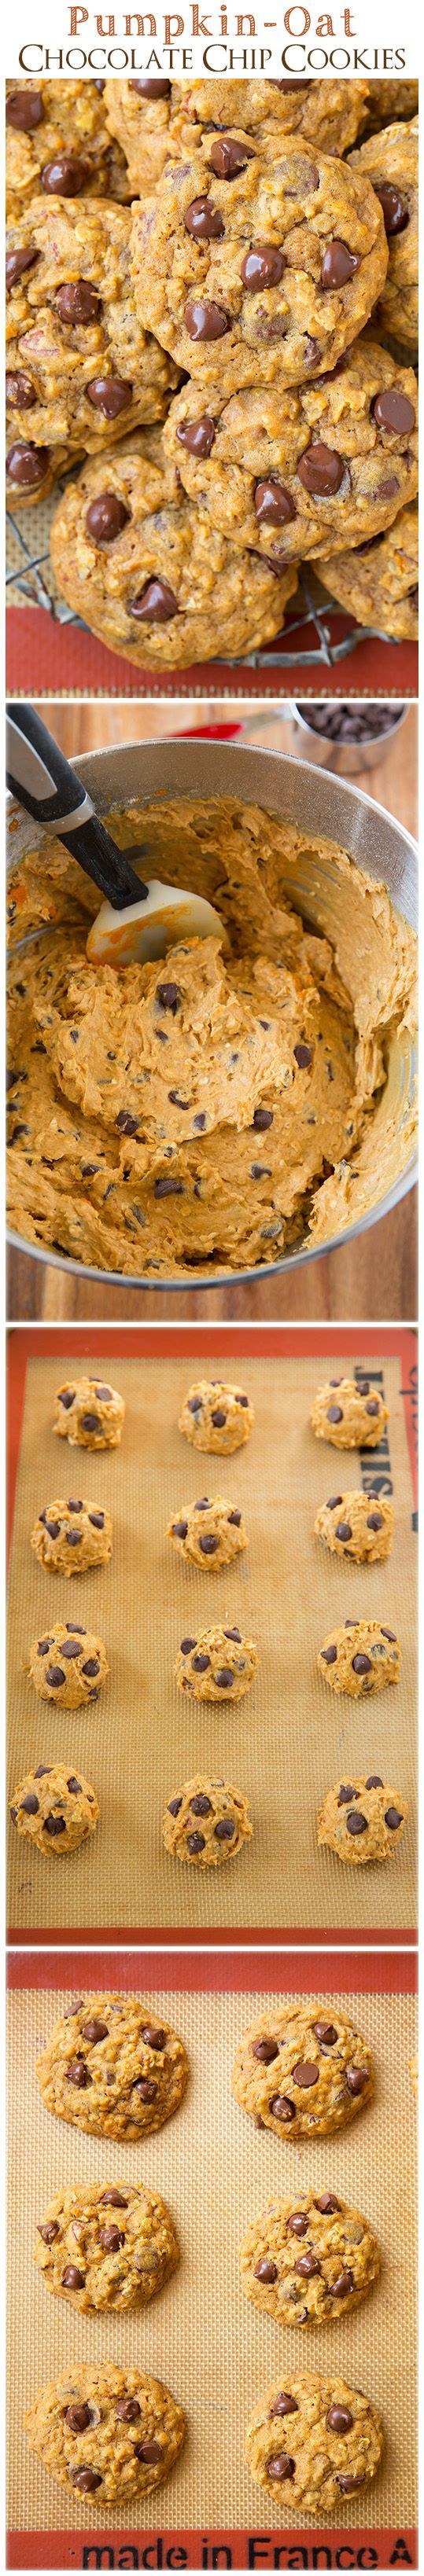 Pumpkin-Oat Chocolate Chip Cookies - They're completely irresistible!